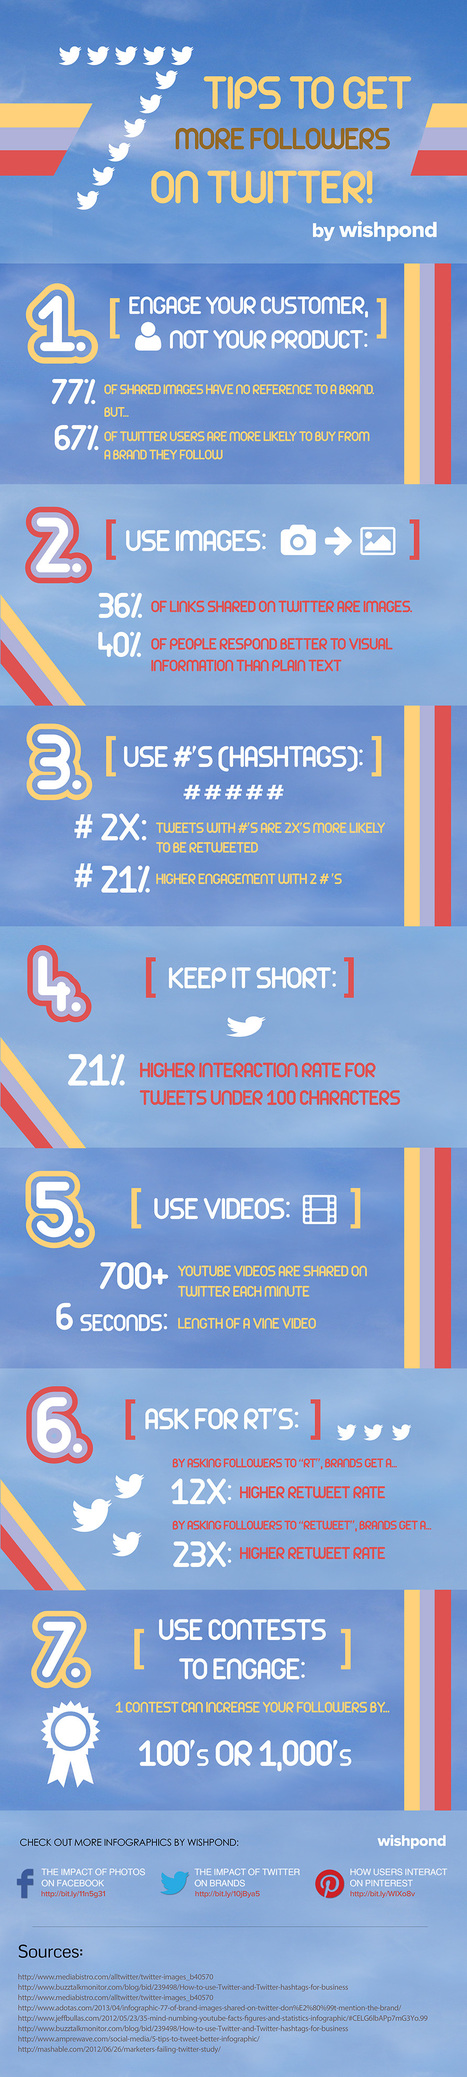 Infographic: 36% of all shared links on Twitter are photos | Better know and better use Social Media today (facebook, twitter...) | Scoop.it